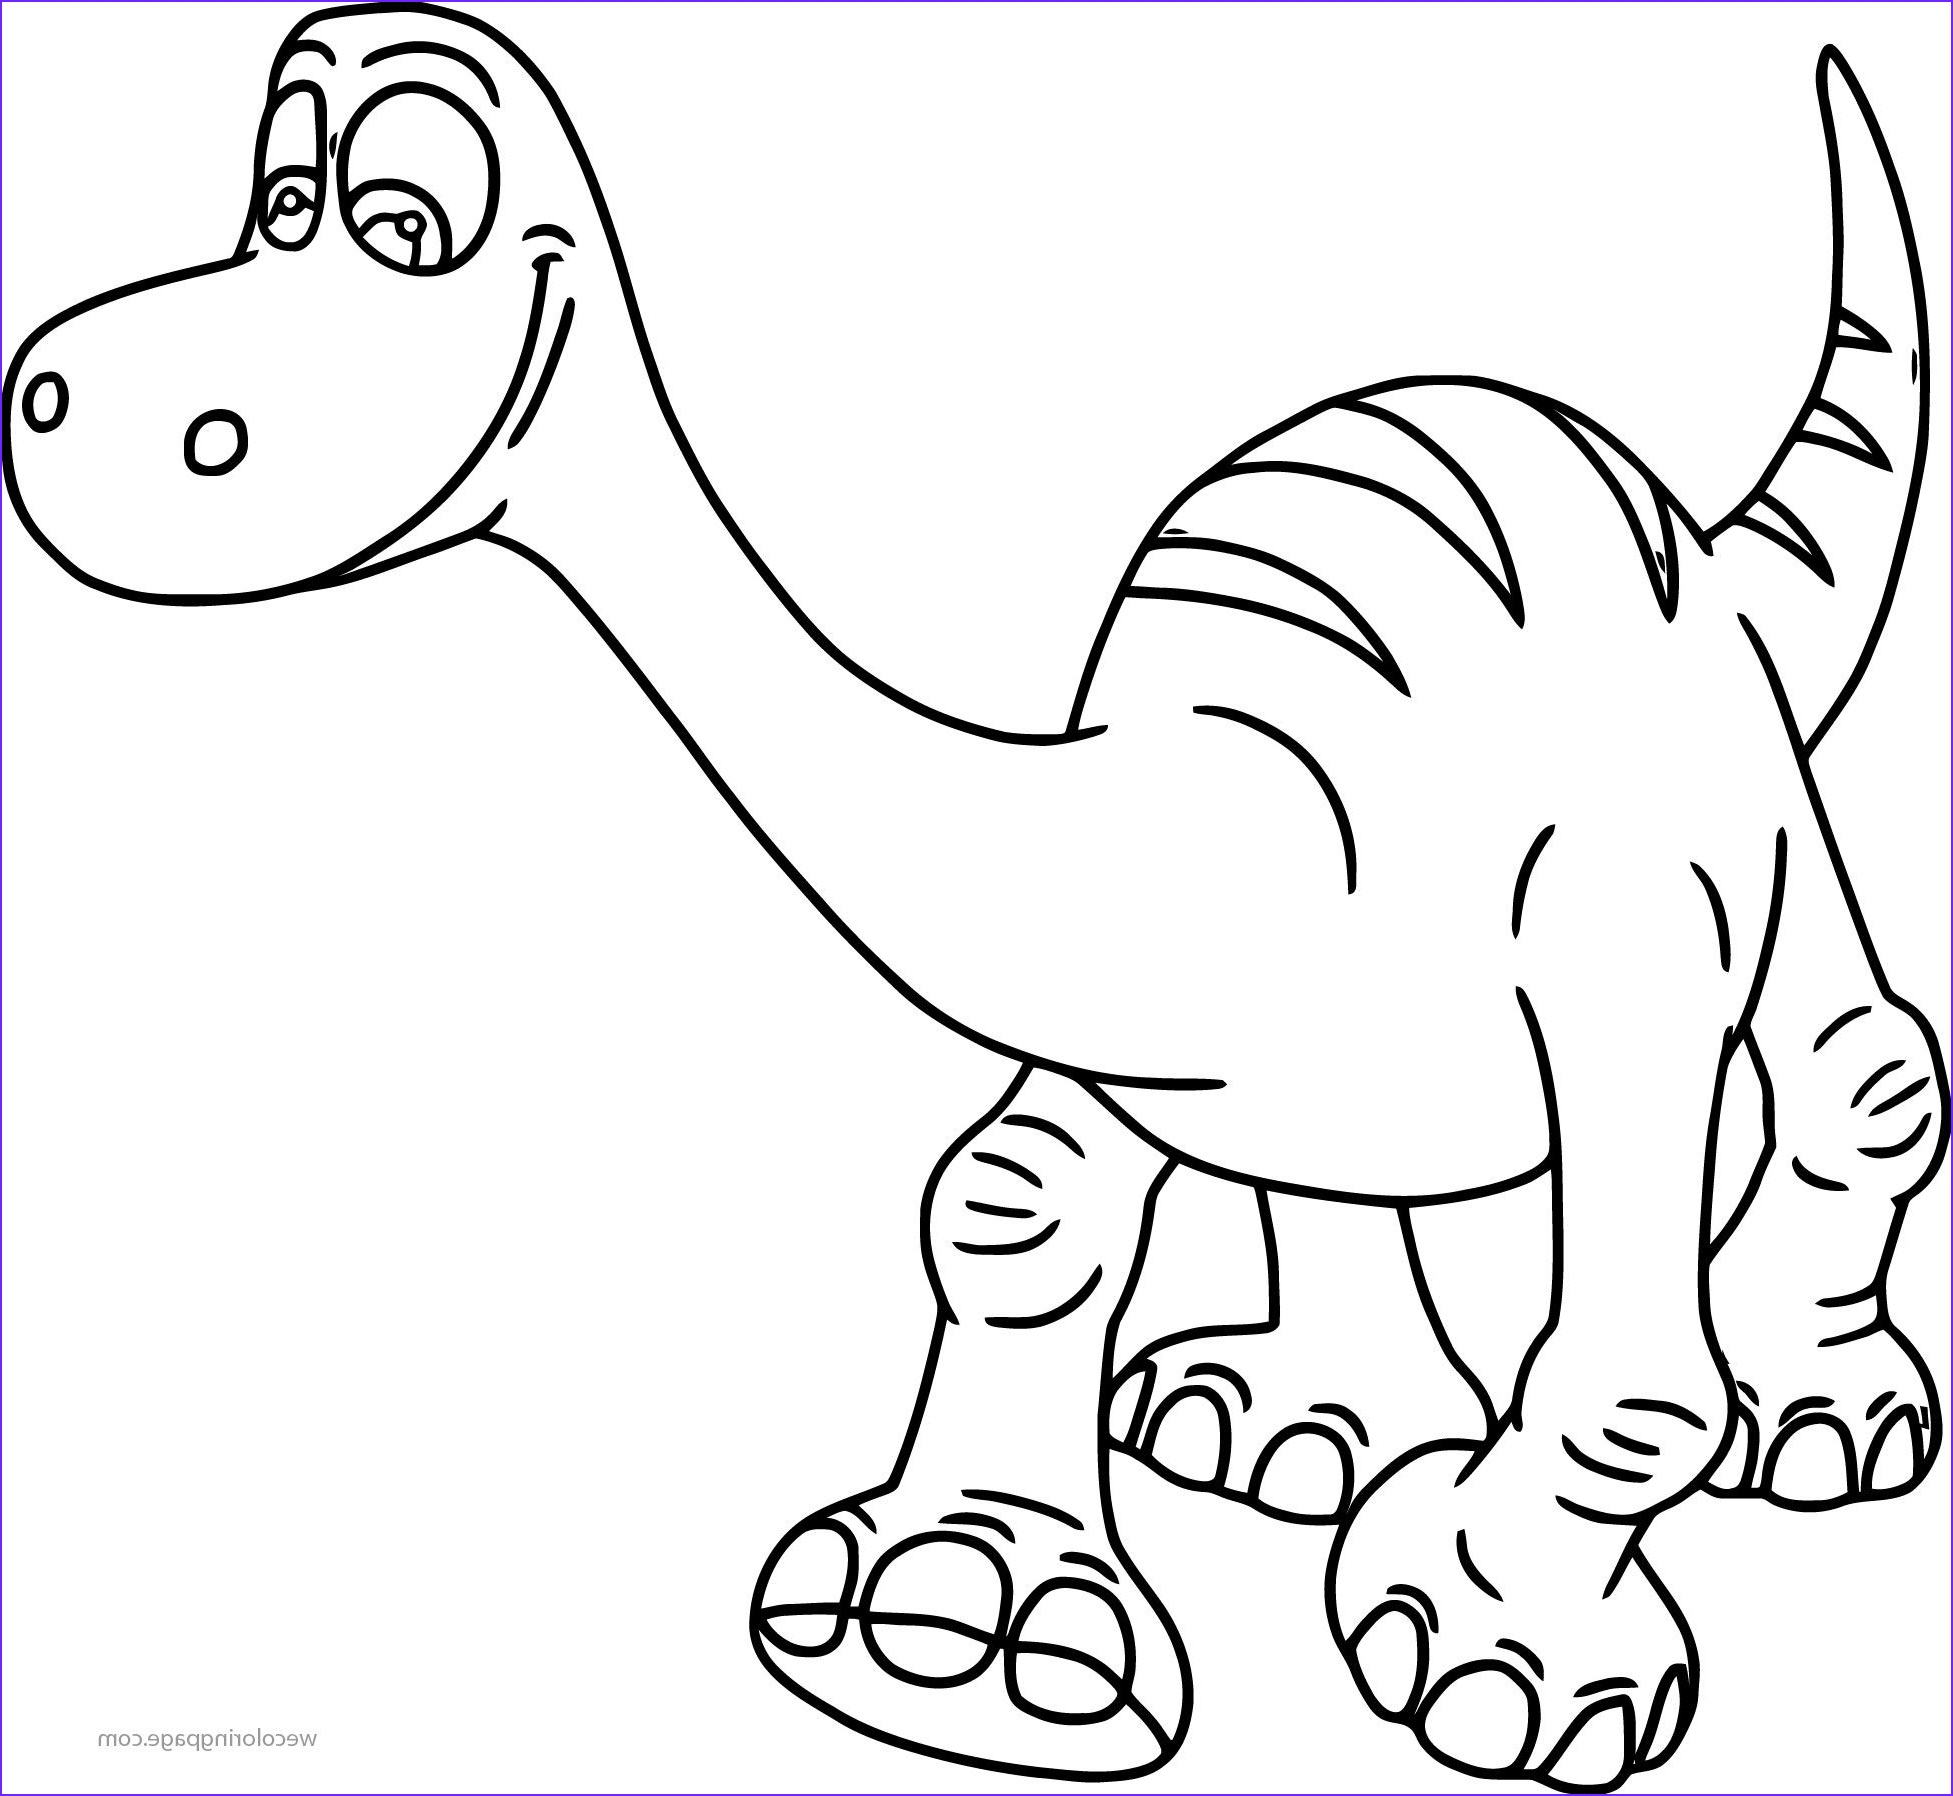 The Good Dinosaur Coloring Pages Beautiful Gallery the Good Dinosaur Disney Coloring Pages